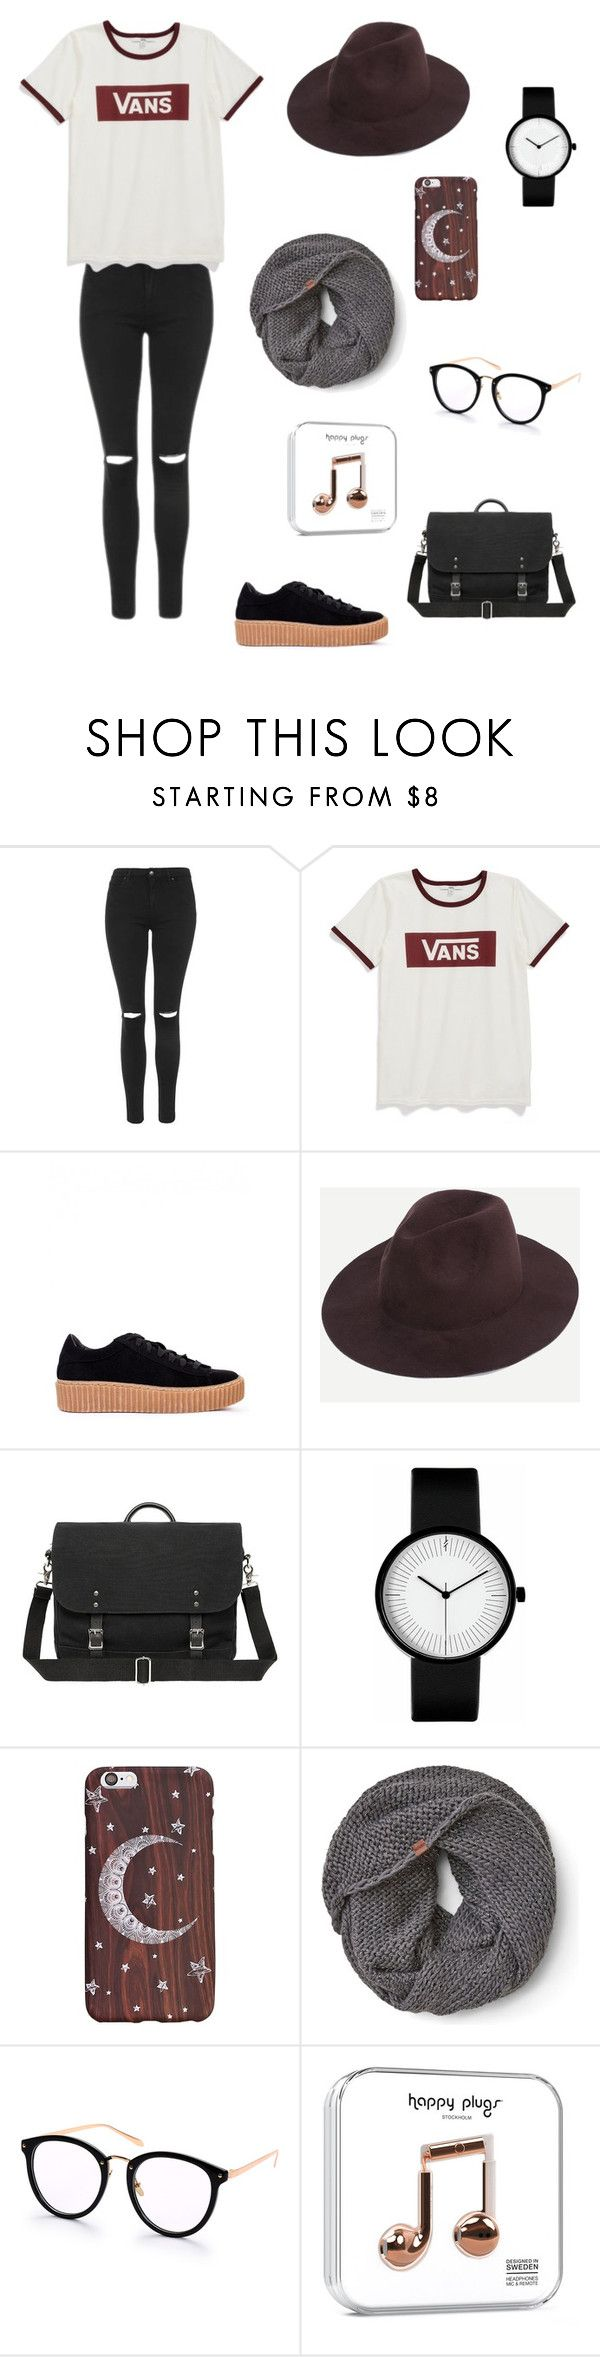 """Back to school"" by magdons on Polyvore featuring Topshop, Vans and Keds"